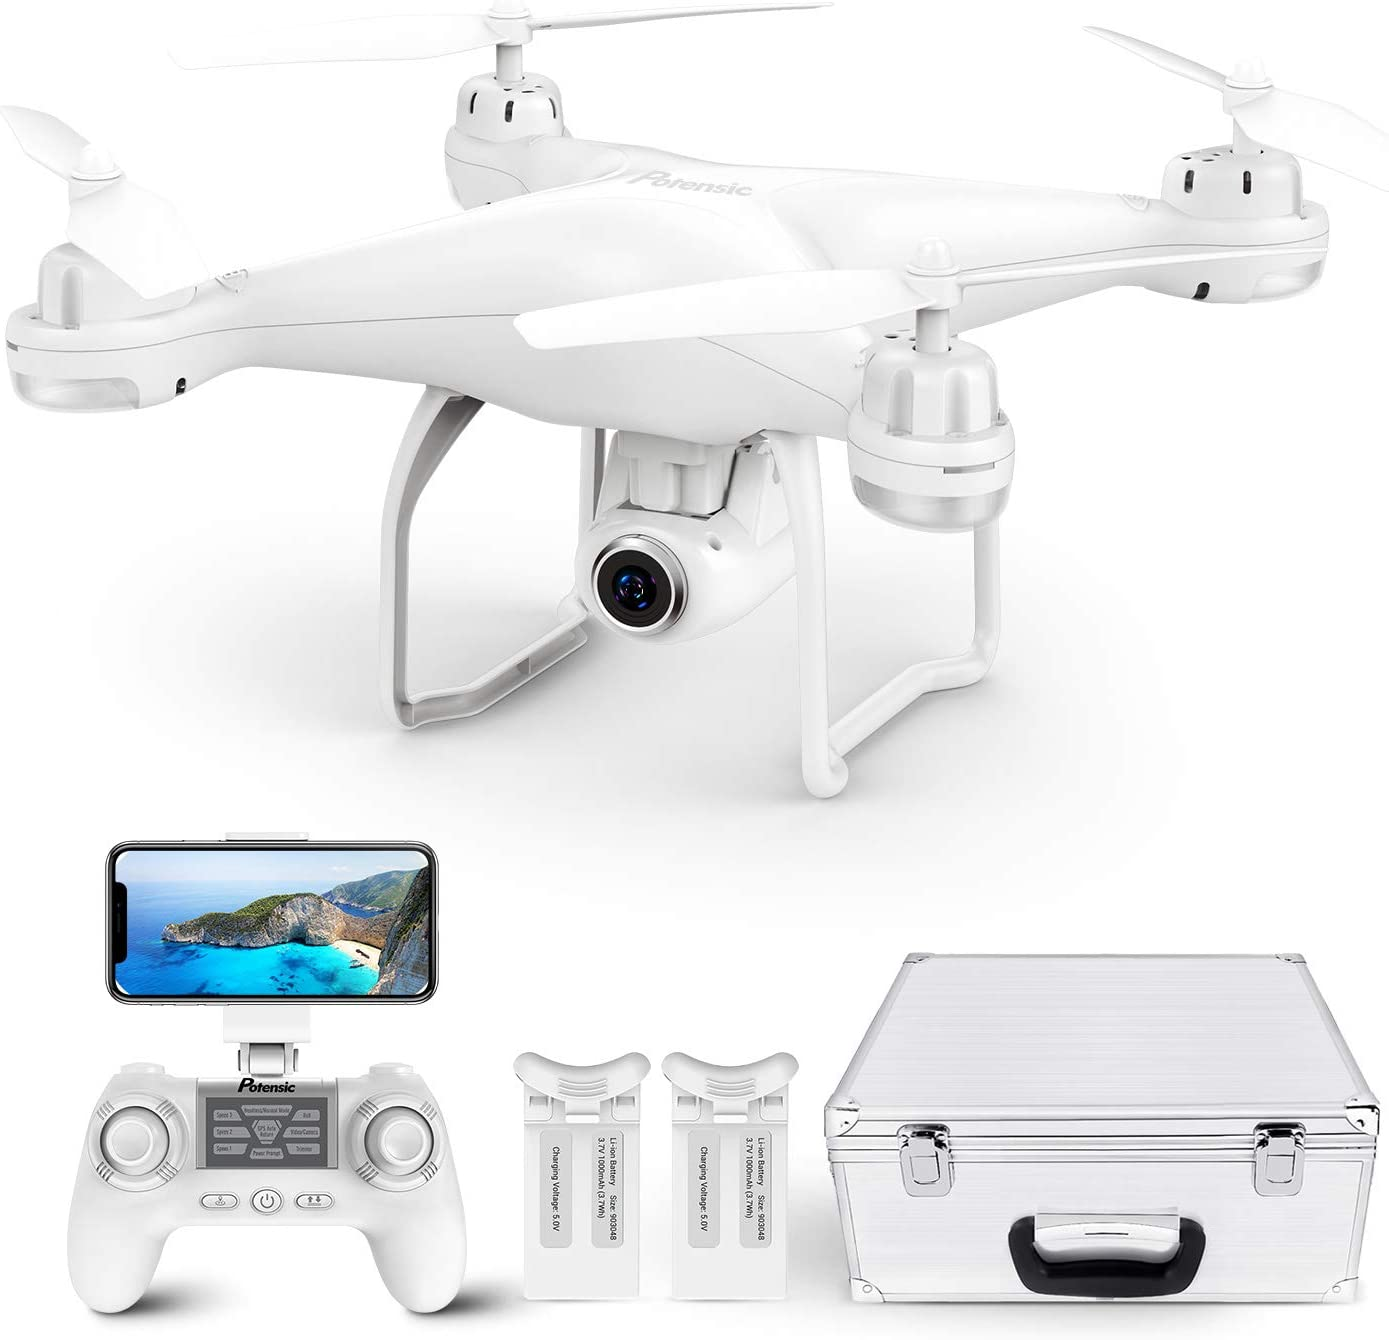 Potensic T25 GPS Drone, FPV RC Drone with Camera 1080P HD WiFi Live Video, Auto Return Home, Altitude Hold